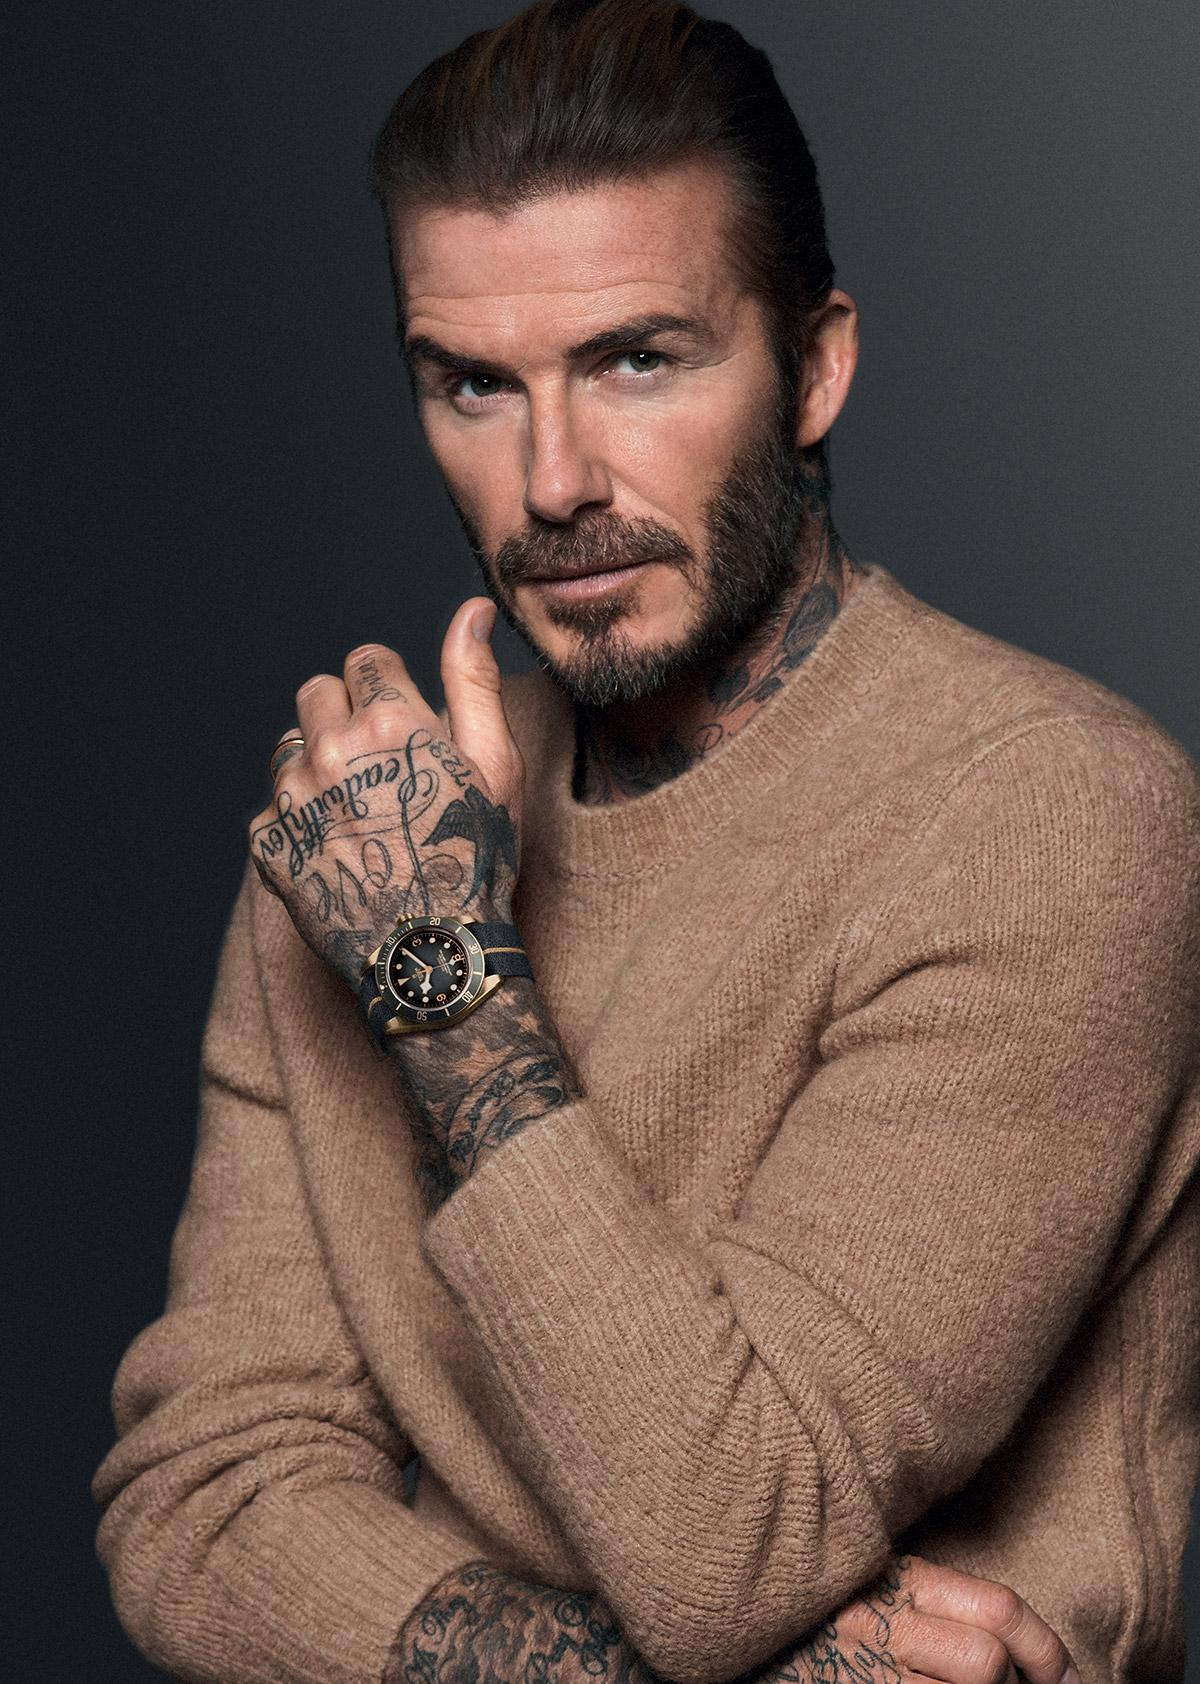 David Beckham with a Tudor watch on his wrist